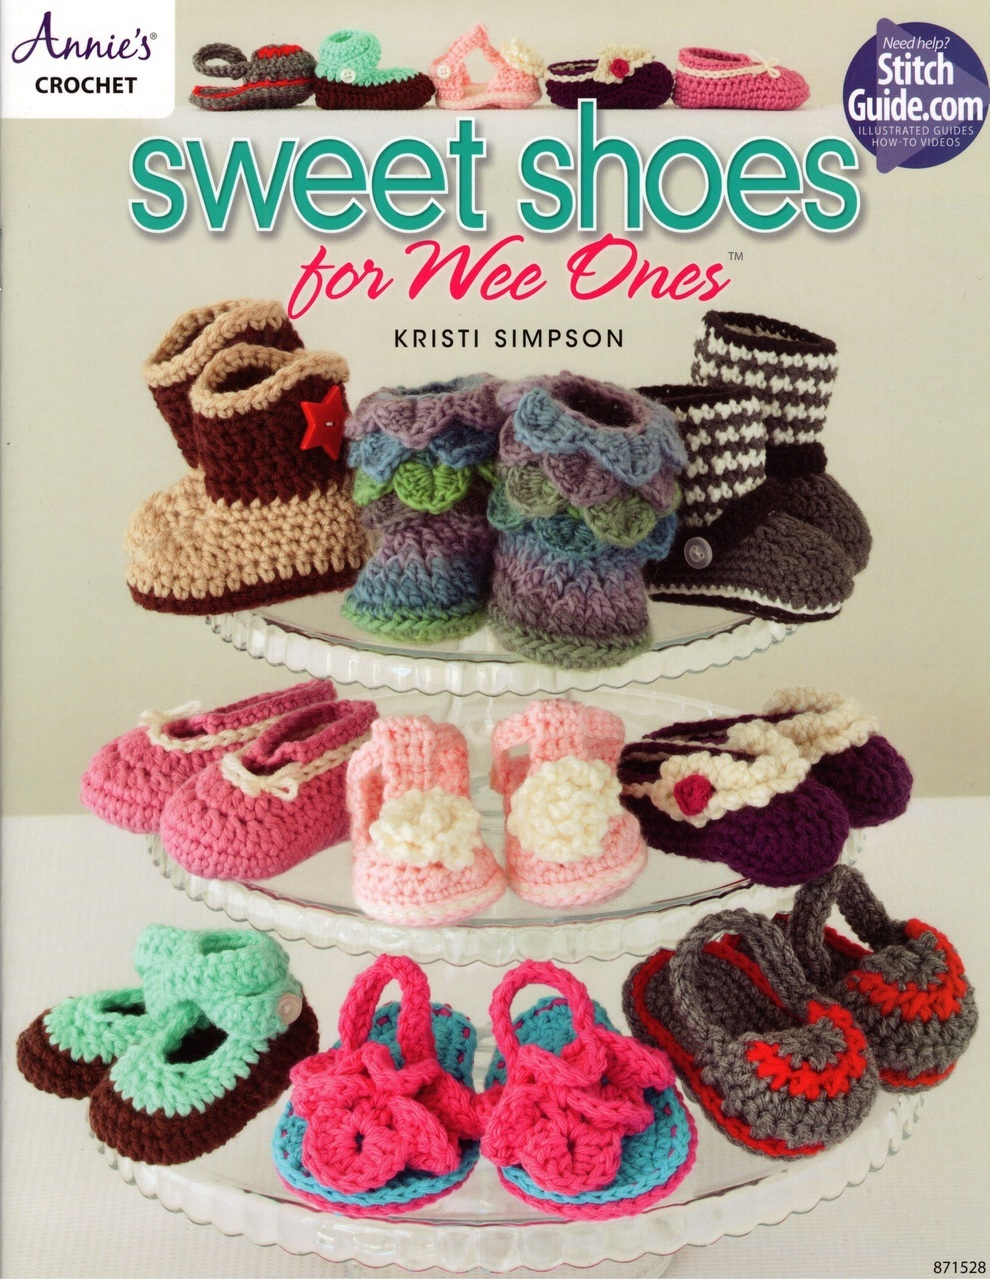 Sweet Shoes For Wee Ones - 15 Delicious Pairs! Serve Them At Your Next Baby Shower!